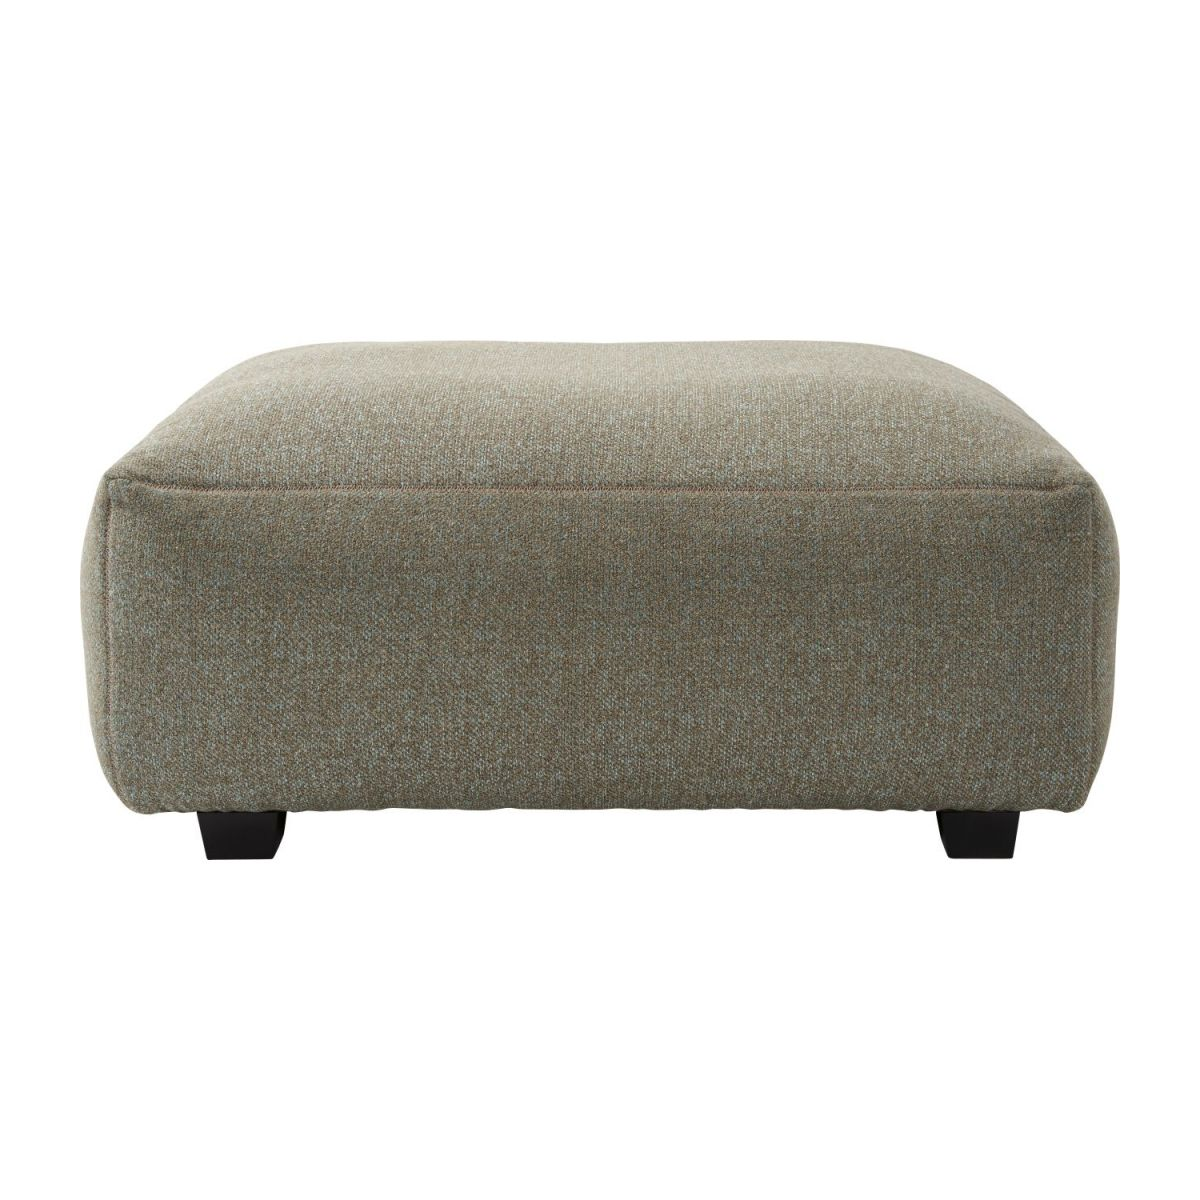 Footstool in Lecce fabric, slade grey n°2